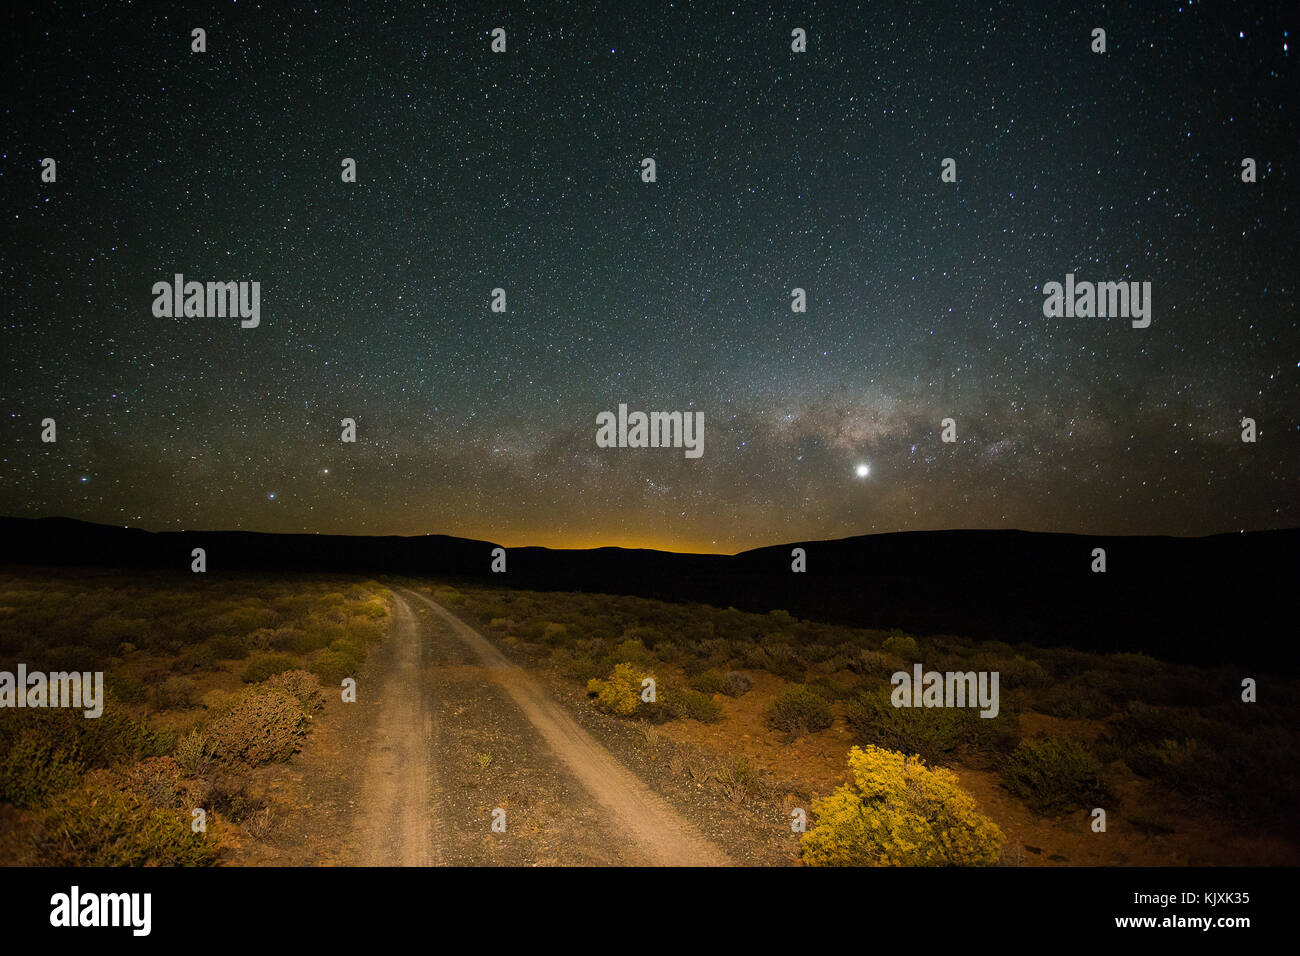 Wide angle view of a two track road in the Karoo at night with the milky way in the sky - Stock Image